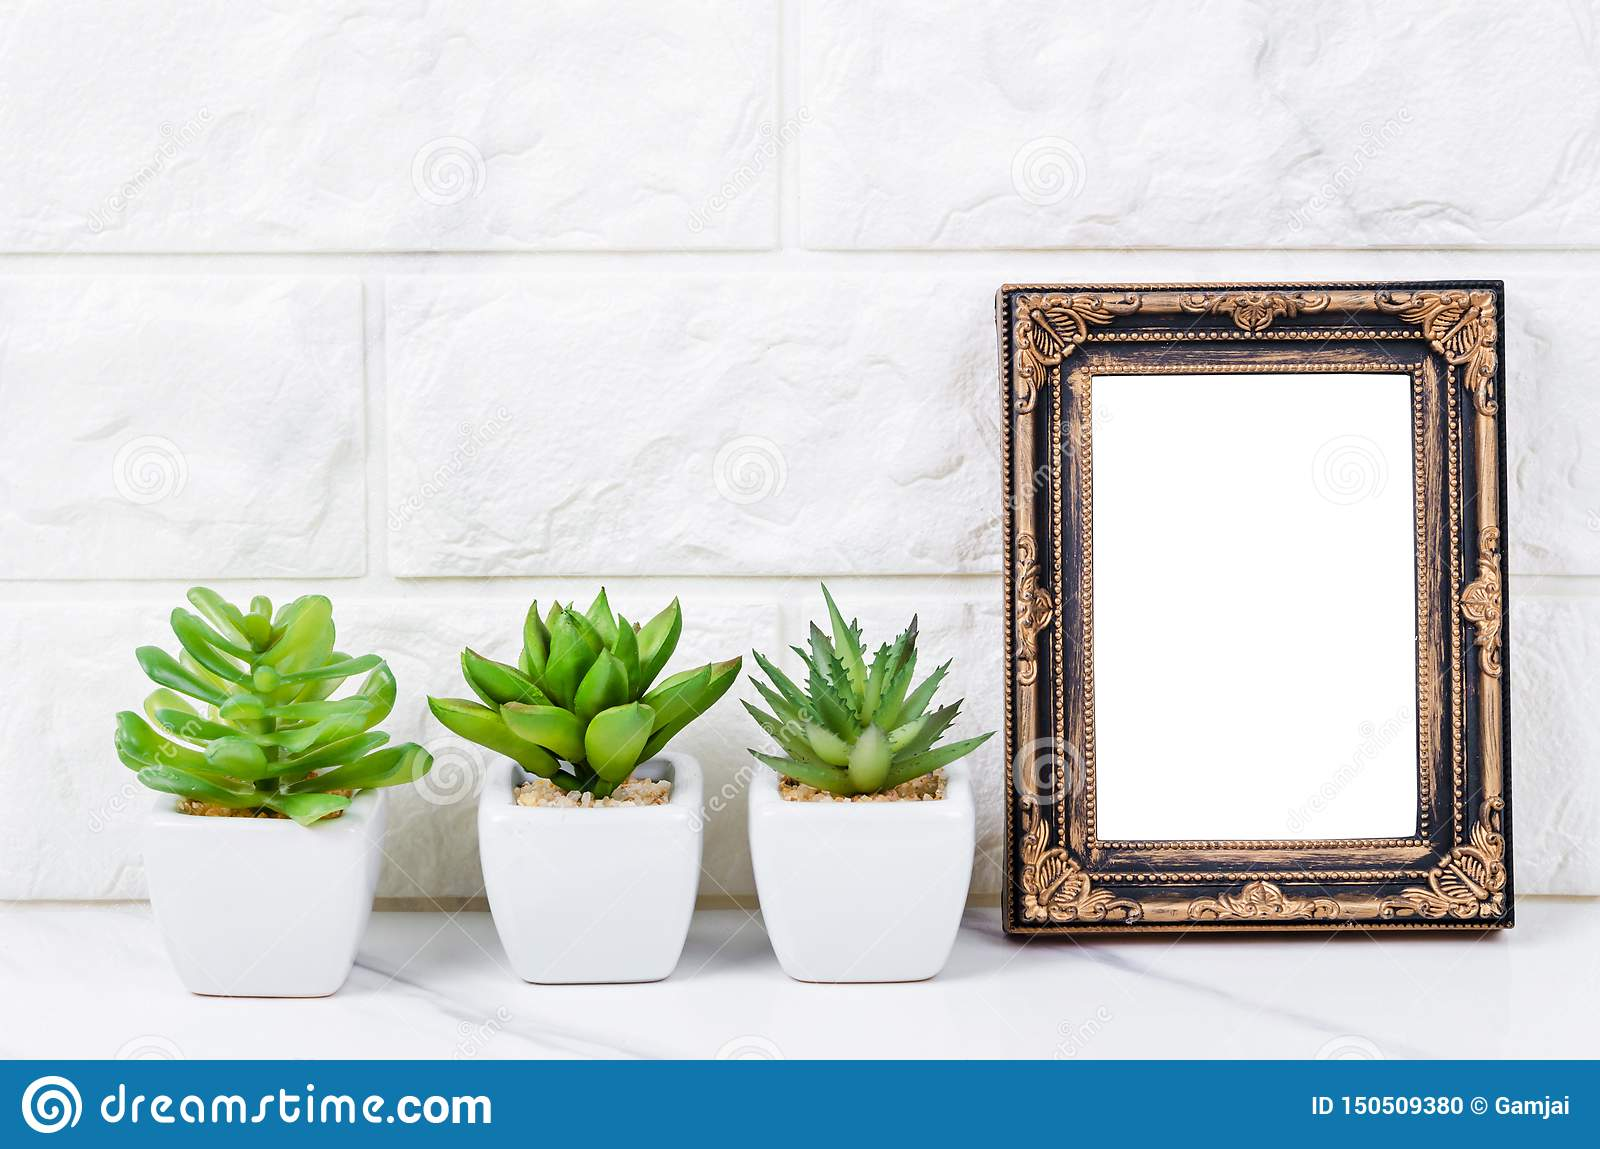 Blank vintage photo frame on wall with cactus plant